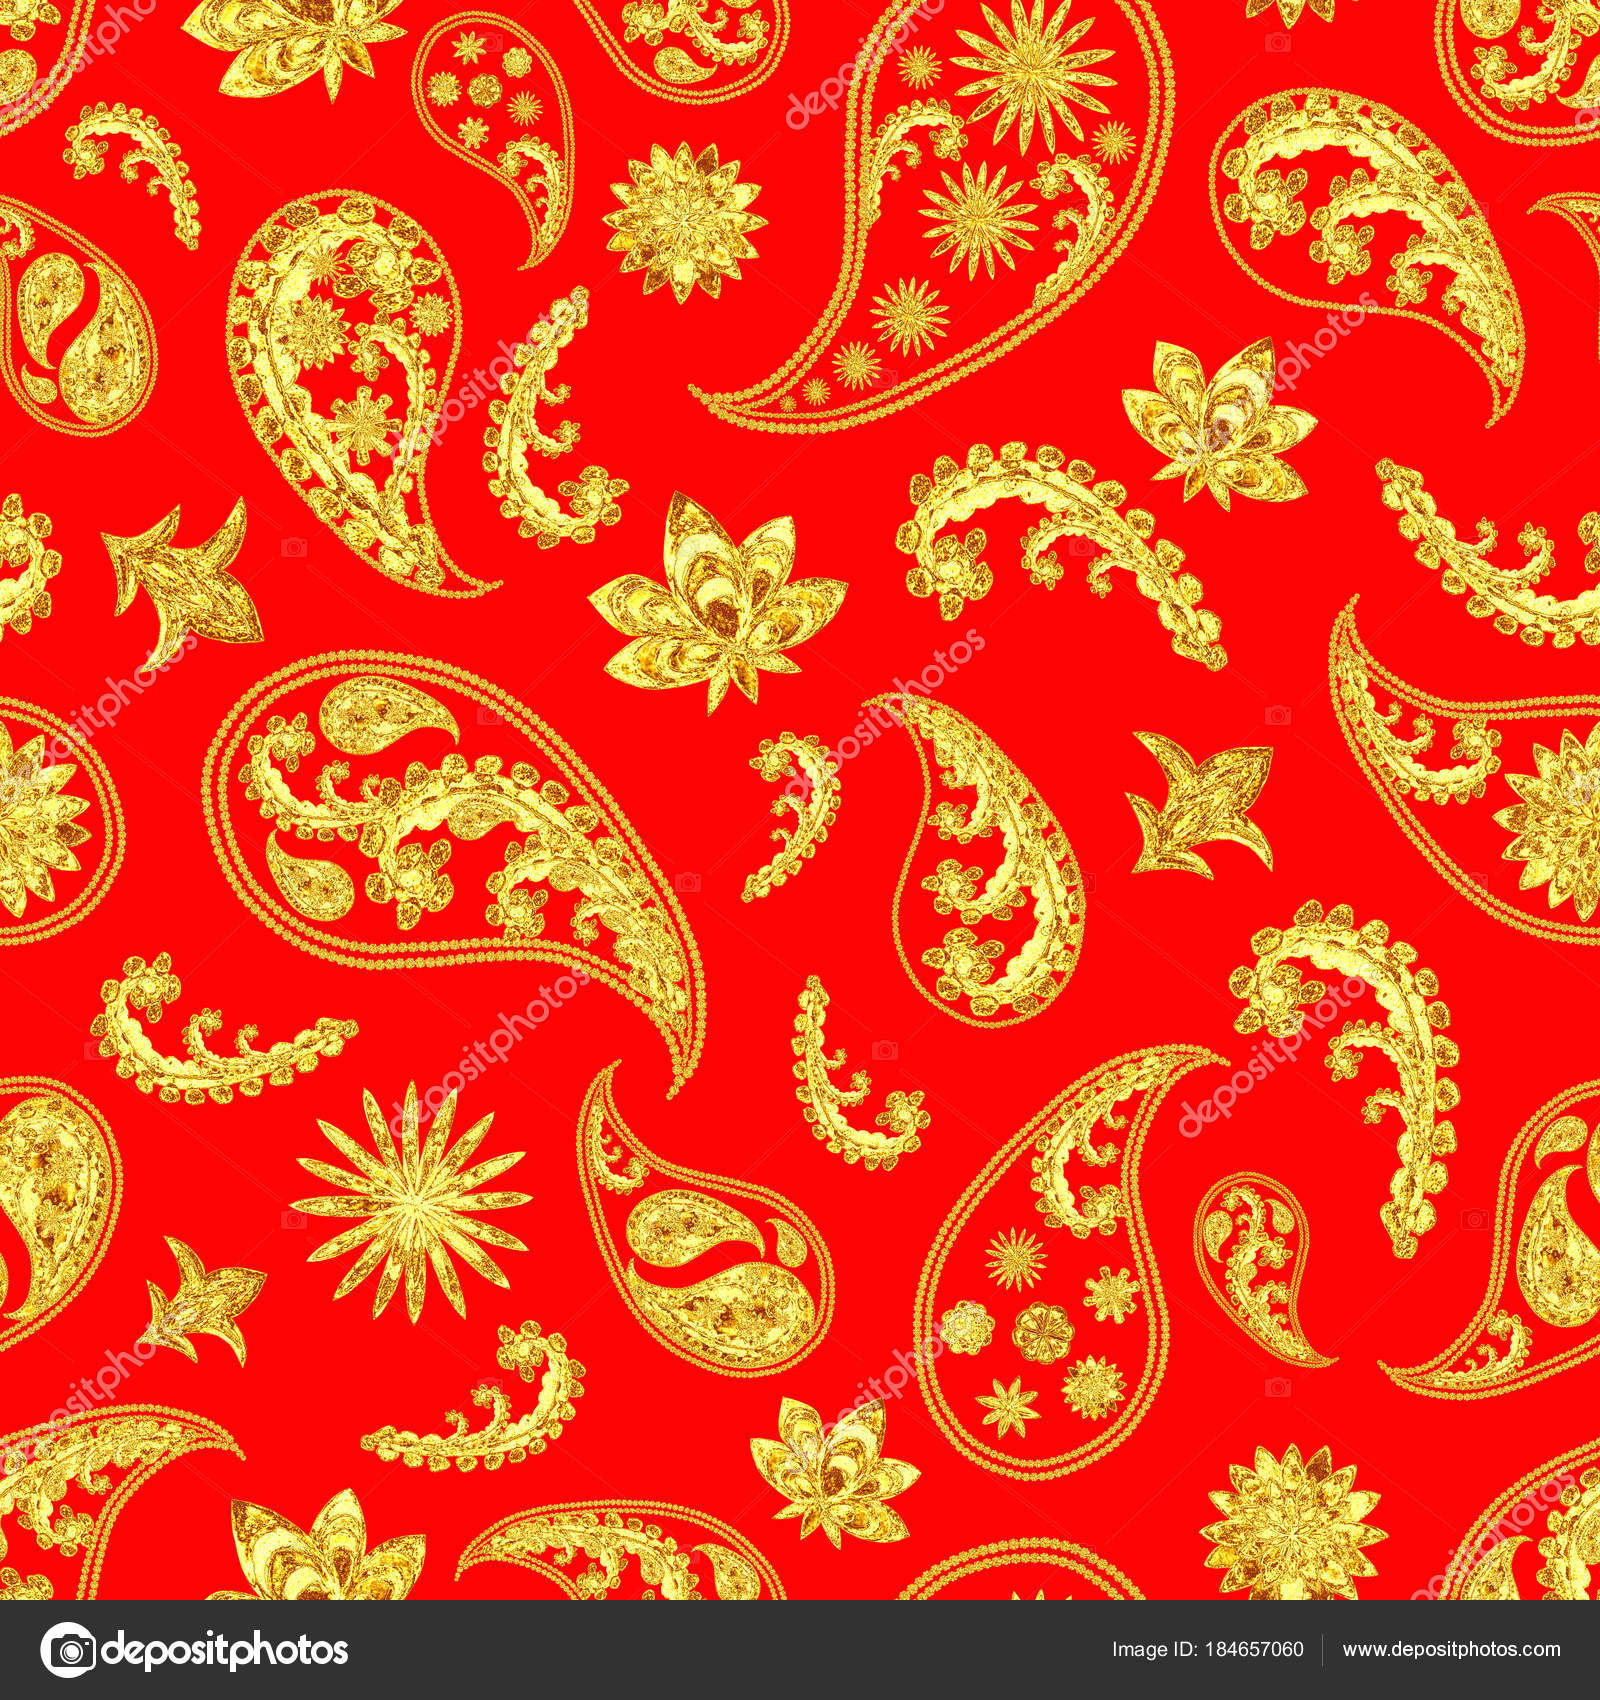 Paisley gold red seamless pattern. Hand drawn golden traditional asian  ethnic oriental arabic indian floral paisley batik elements ornament.